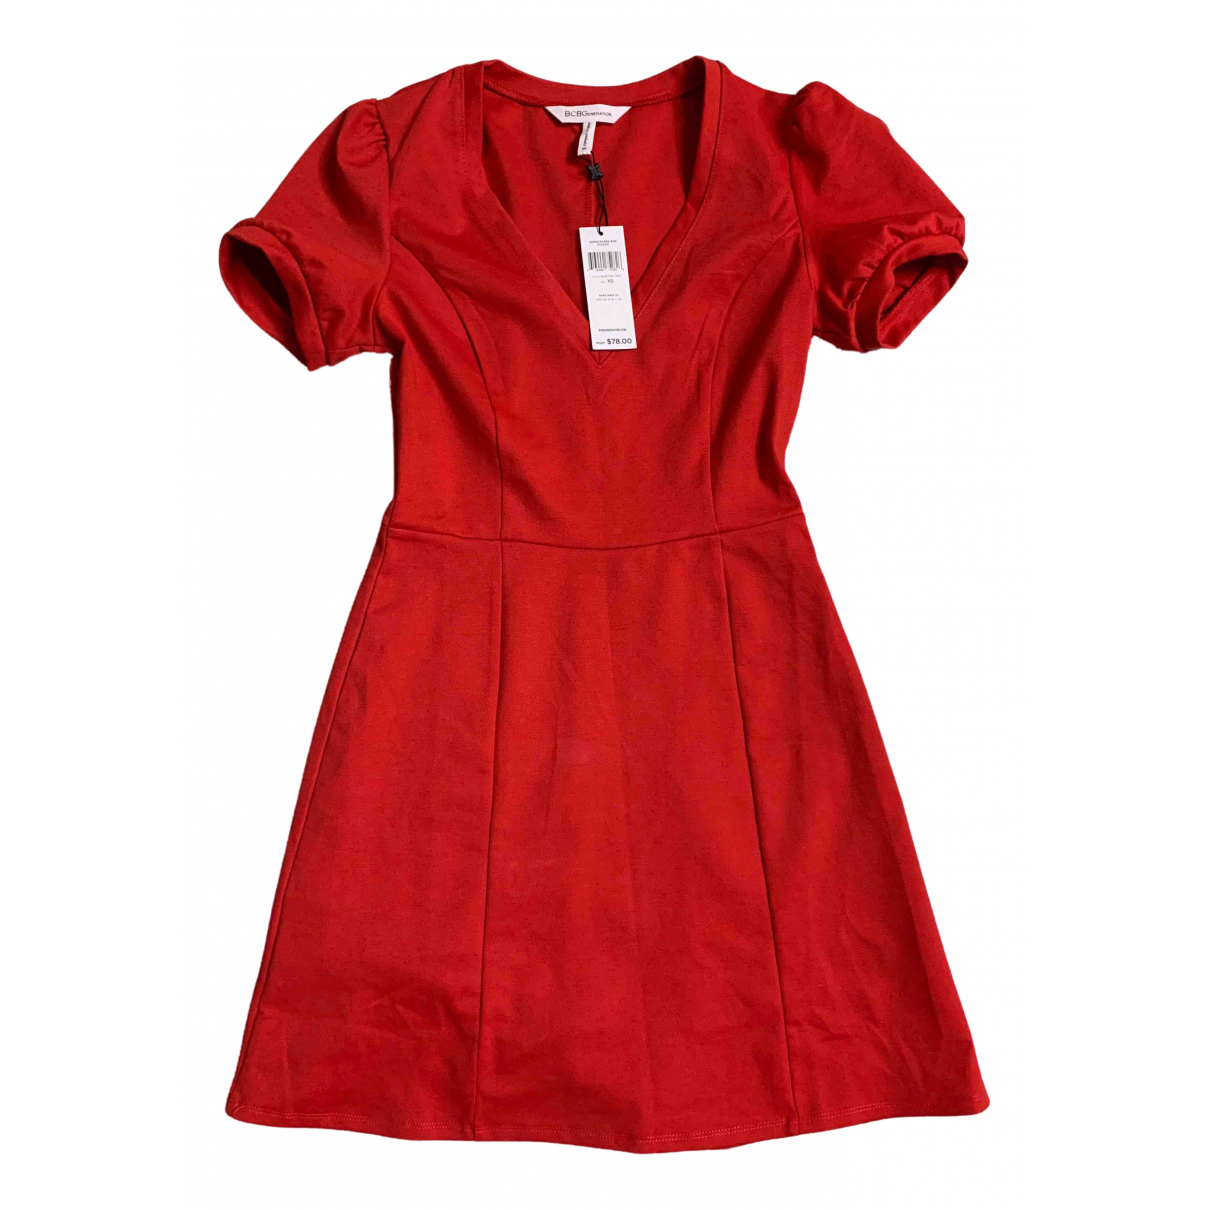 Non Signé / Unsigned \N Red dress for Women XS International